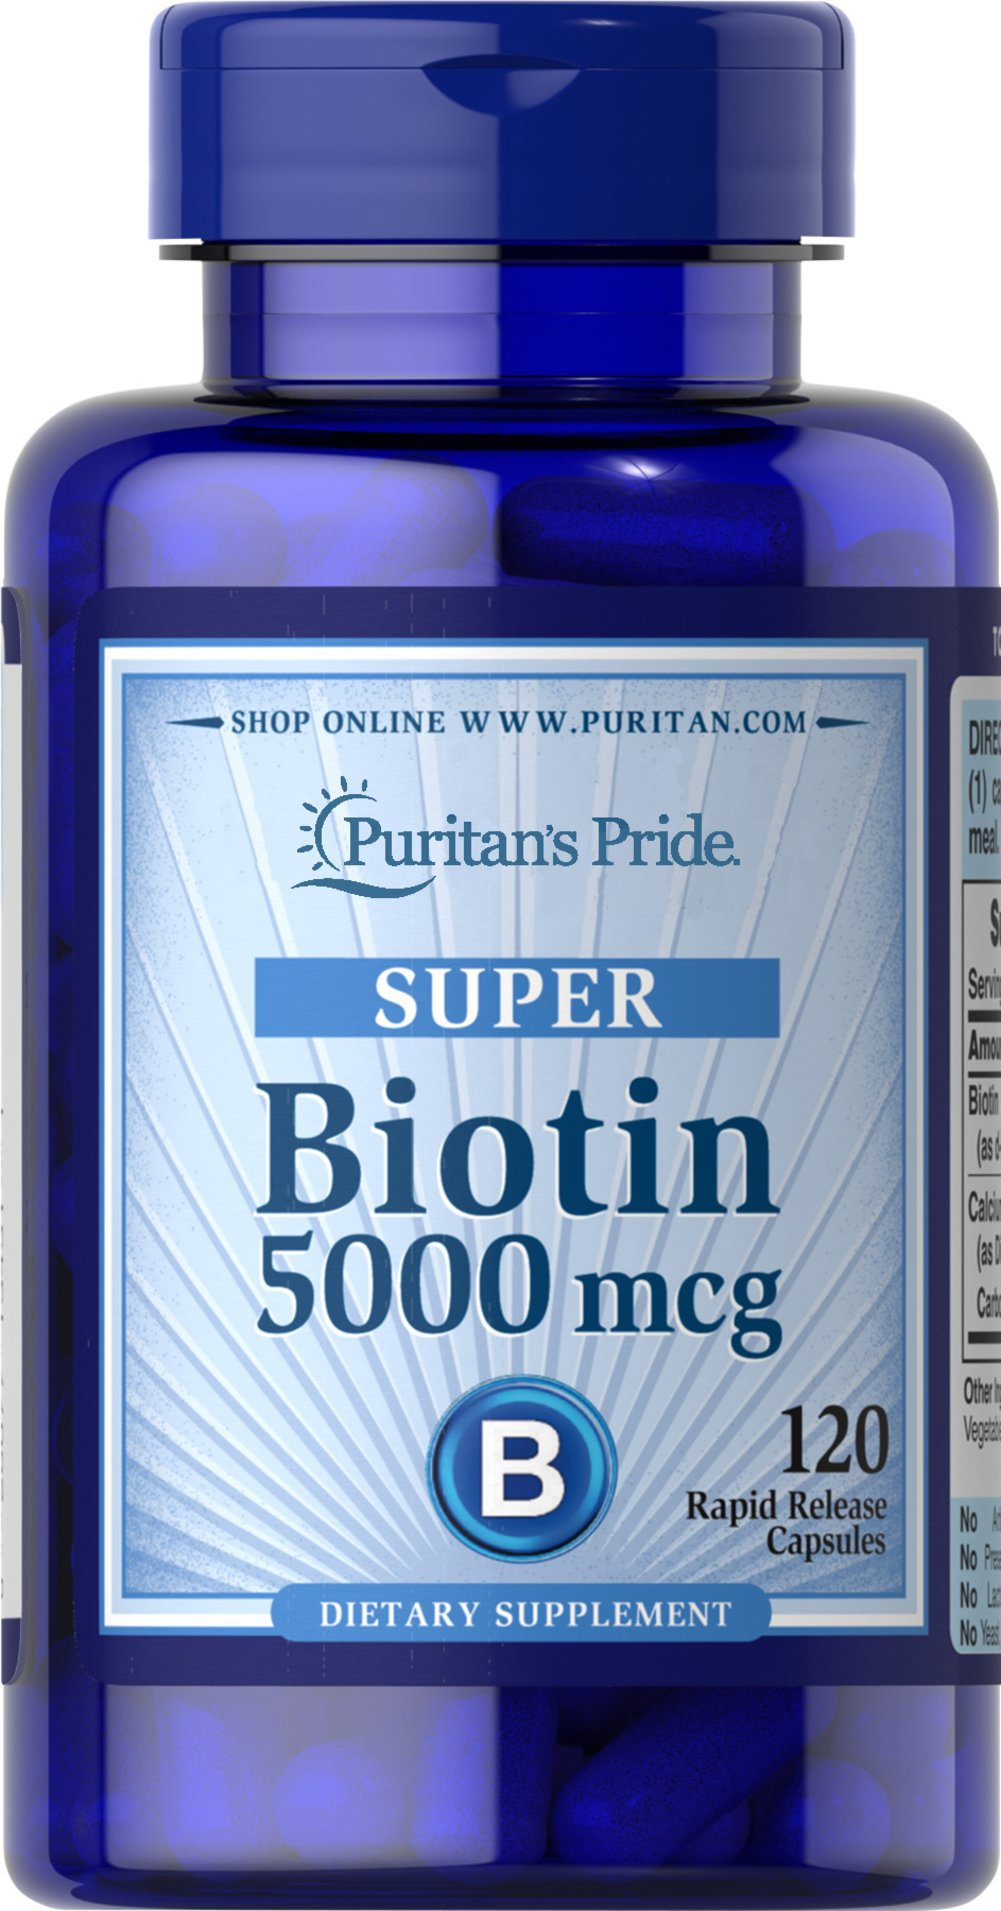 Biotin 5000 mcg <p>Supports Skin & Hair Health**</p><p>Found in foods such as oatmeal and soy, Biotin, a water-soluble B vitamin, assists in energy metabolism in cells.** Biotin helps to support healthy skin and hair.**</p> 120 Capsules 5000 mcg $12.99